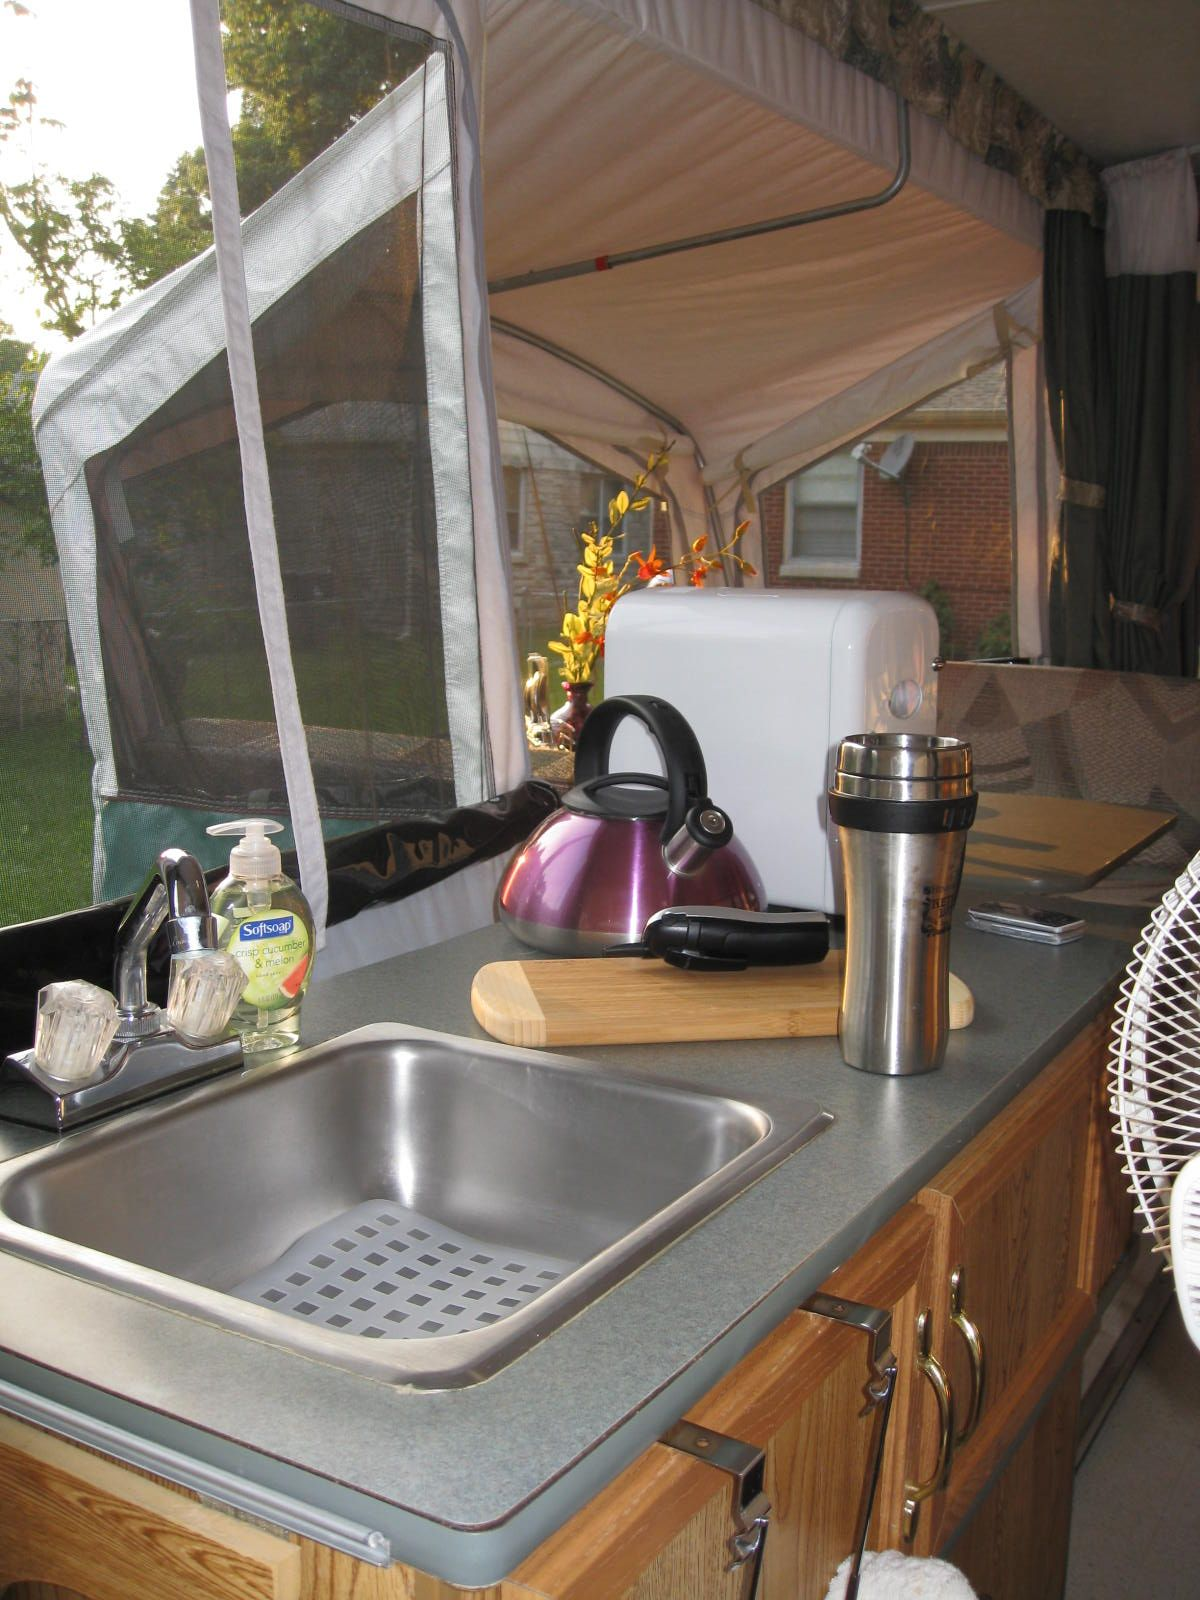 Pin by andrew hoover on camping kitchen remodel